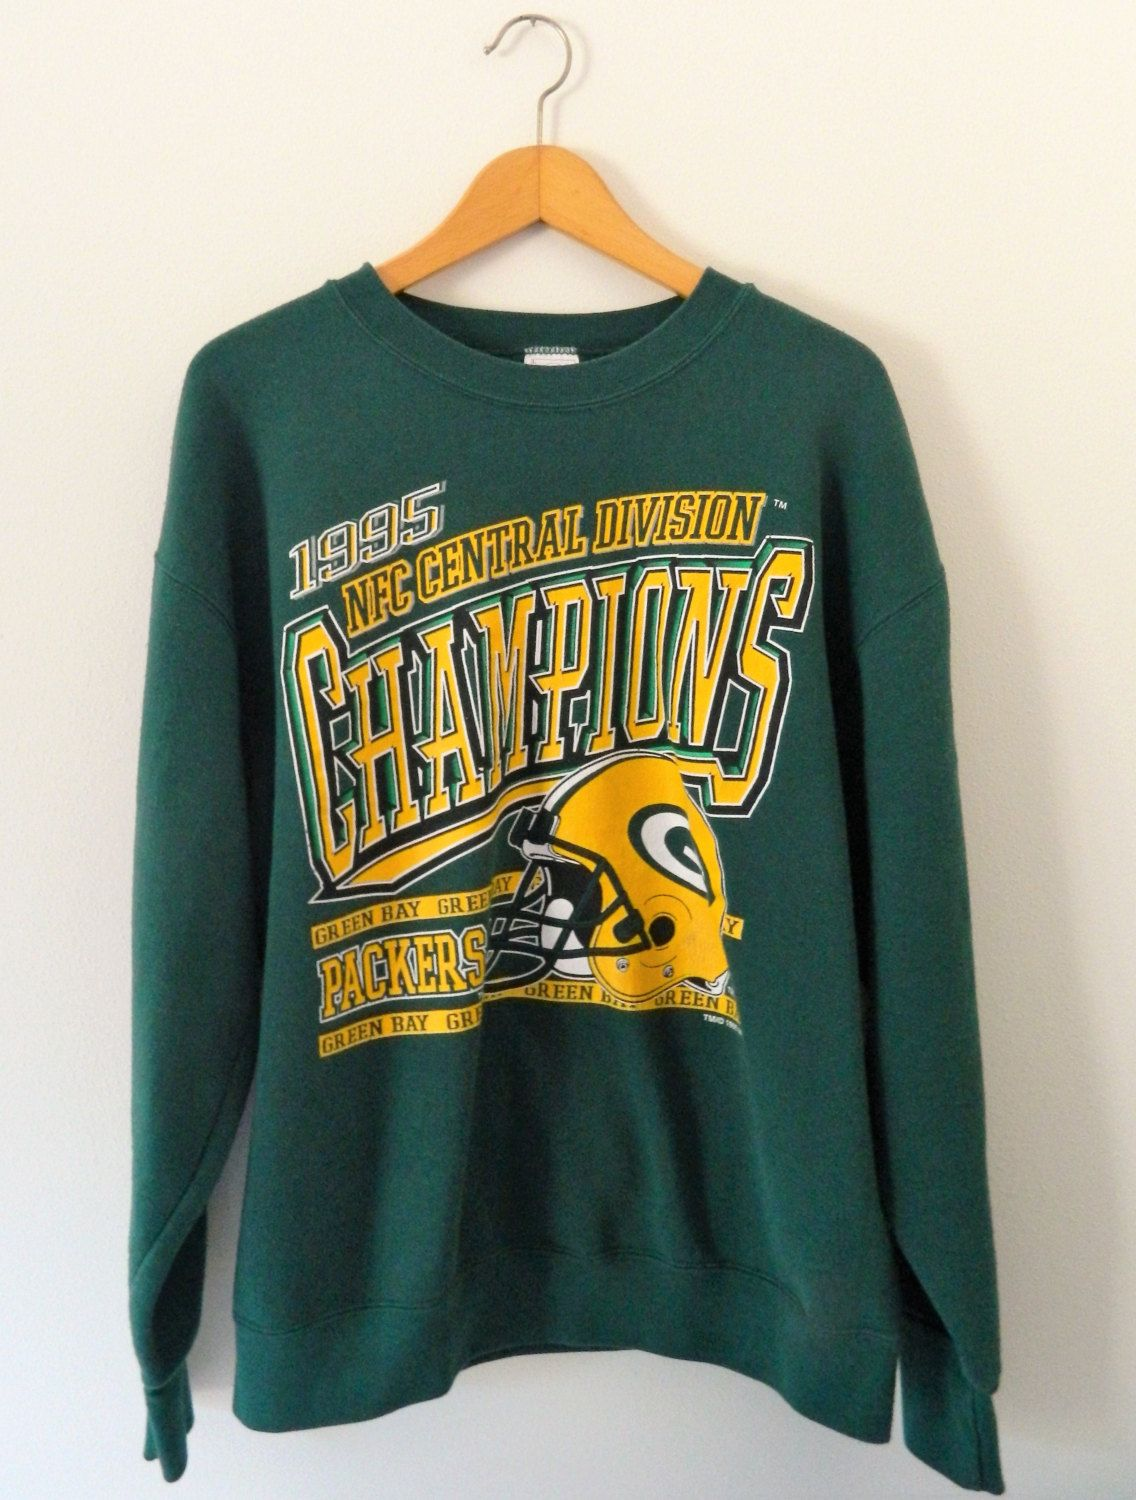 Vintage Green Bay Packers Sweatshirt 1995 Packers Nfc Central Division Champions Green Bay Packers Sweatshirt Sweatshirts Vintage Green